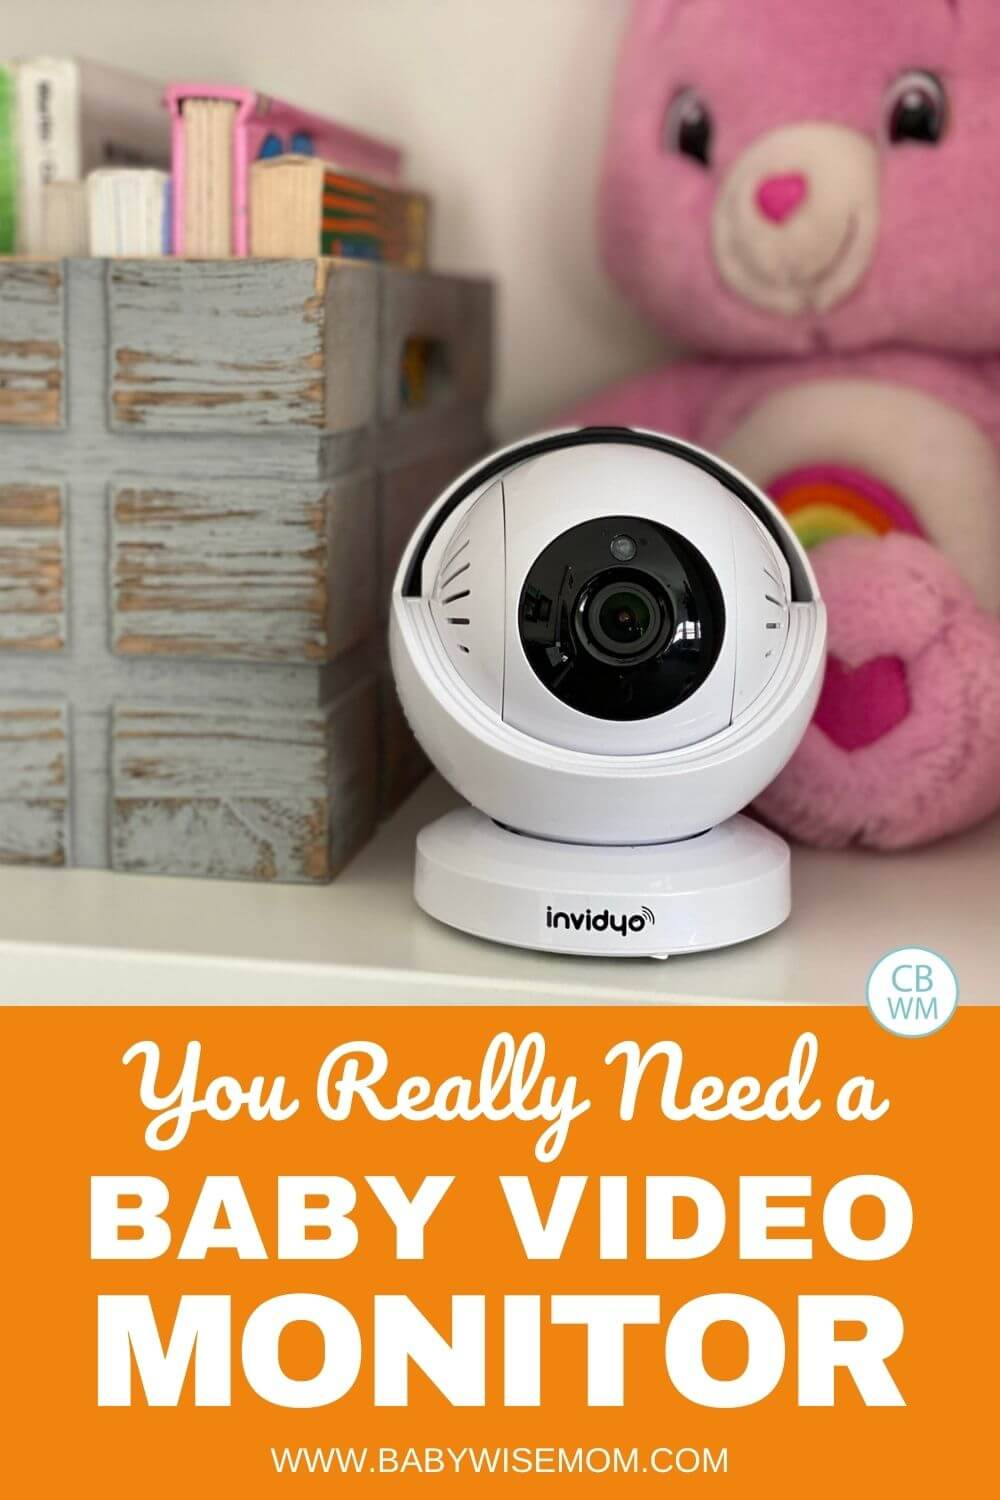 You really need a baby video monitor